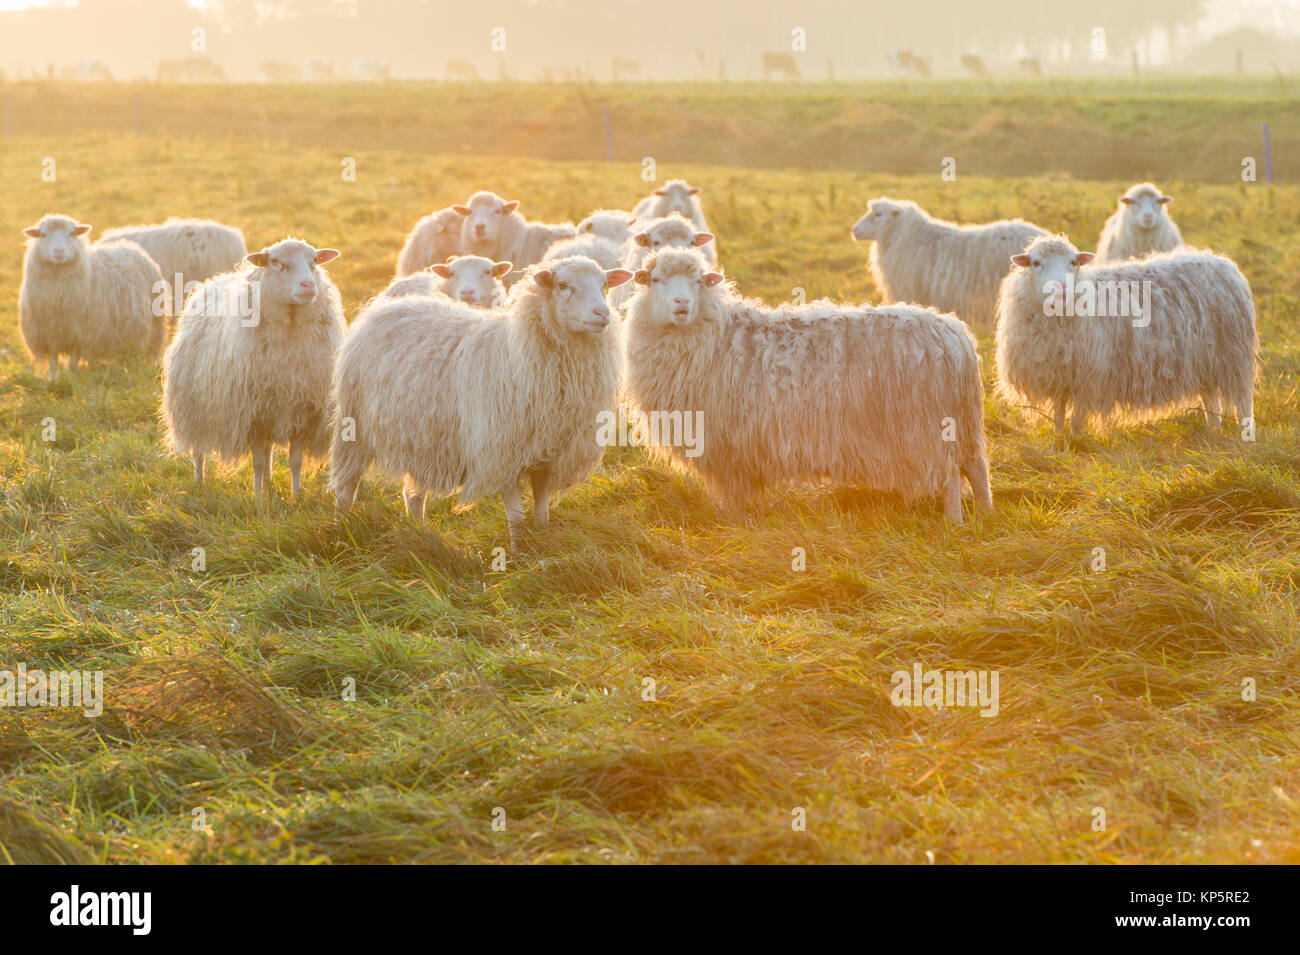 Schafe bei Sonnenaufgang, sheeps on meadow in the early morning, flock of sheeps - Stock Image